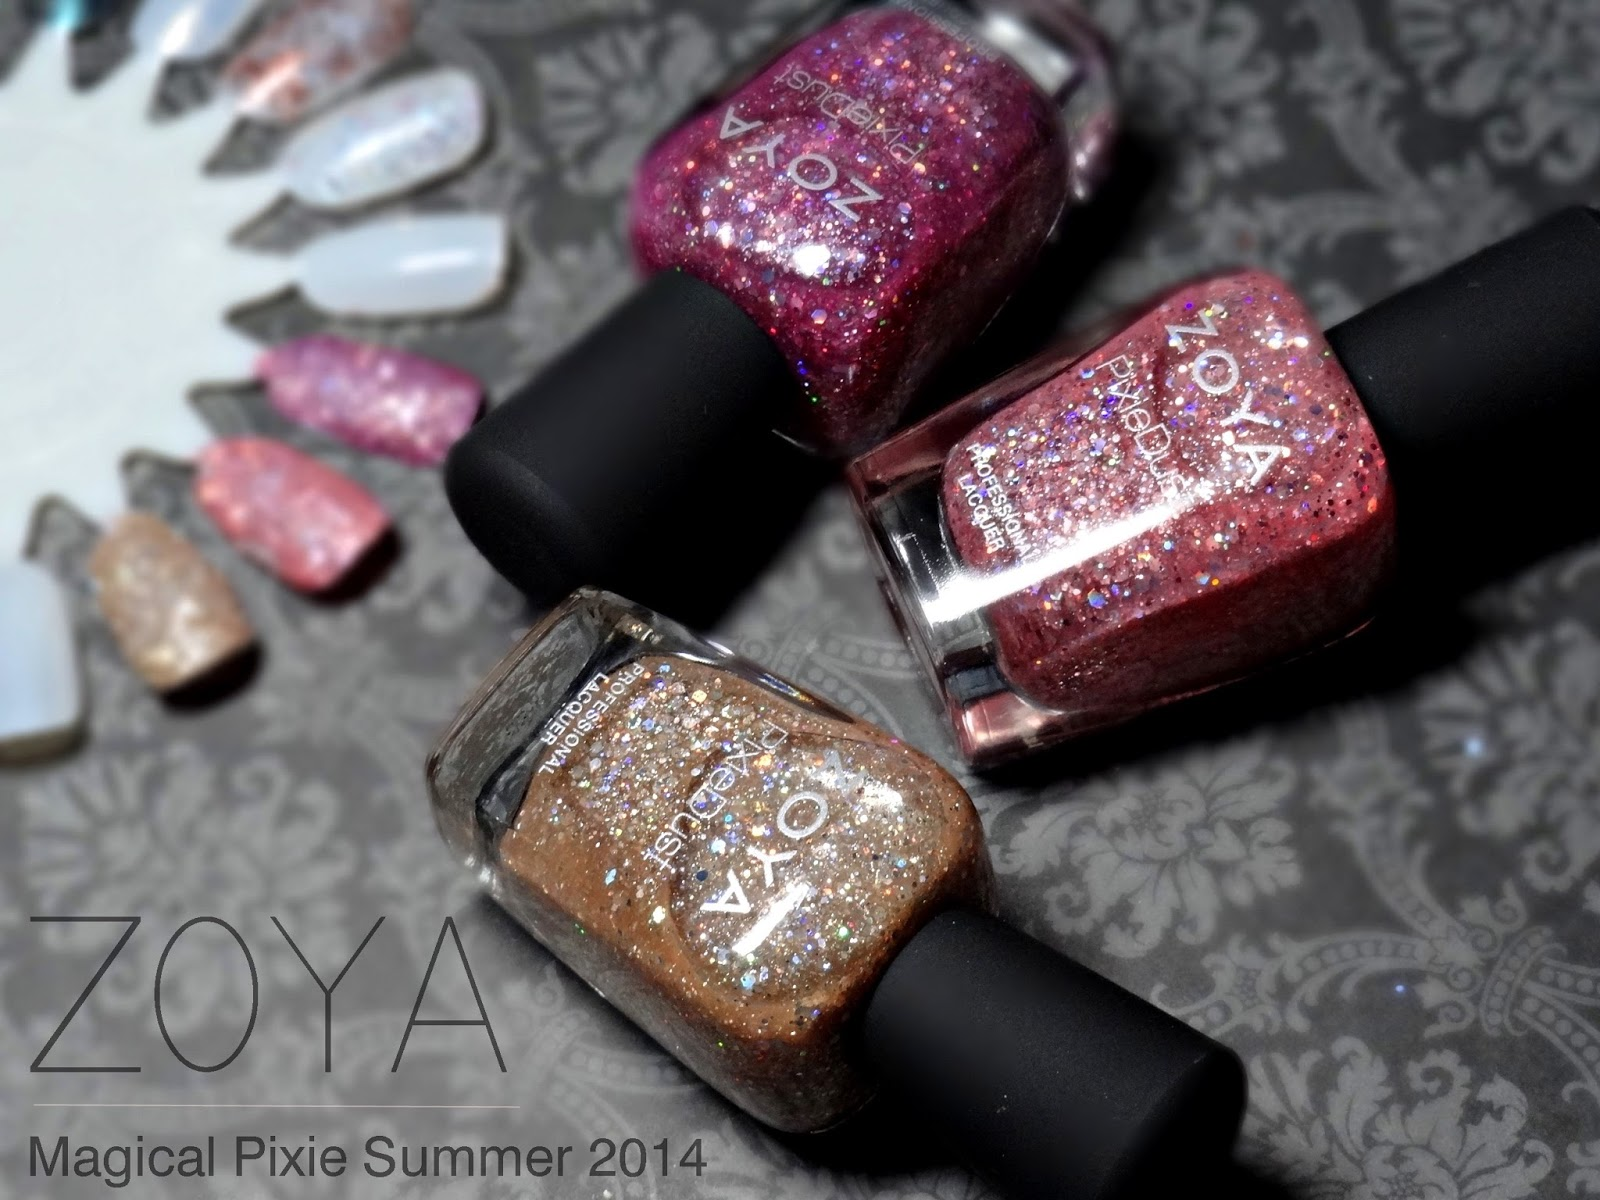 ZOYA Magical Pixie Summer 2014 Collection